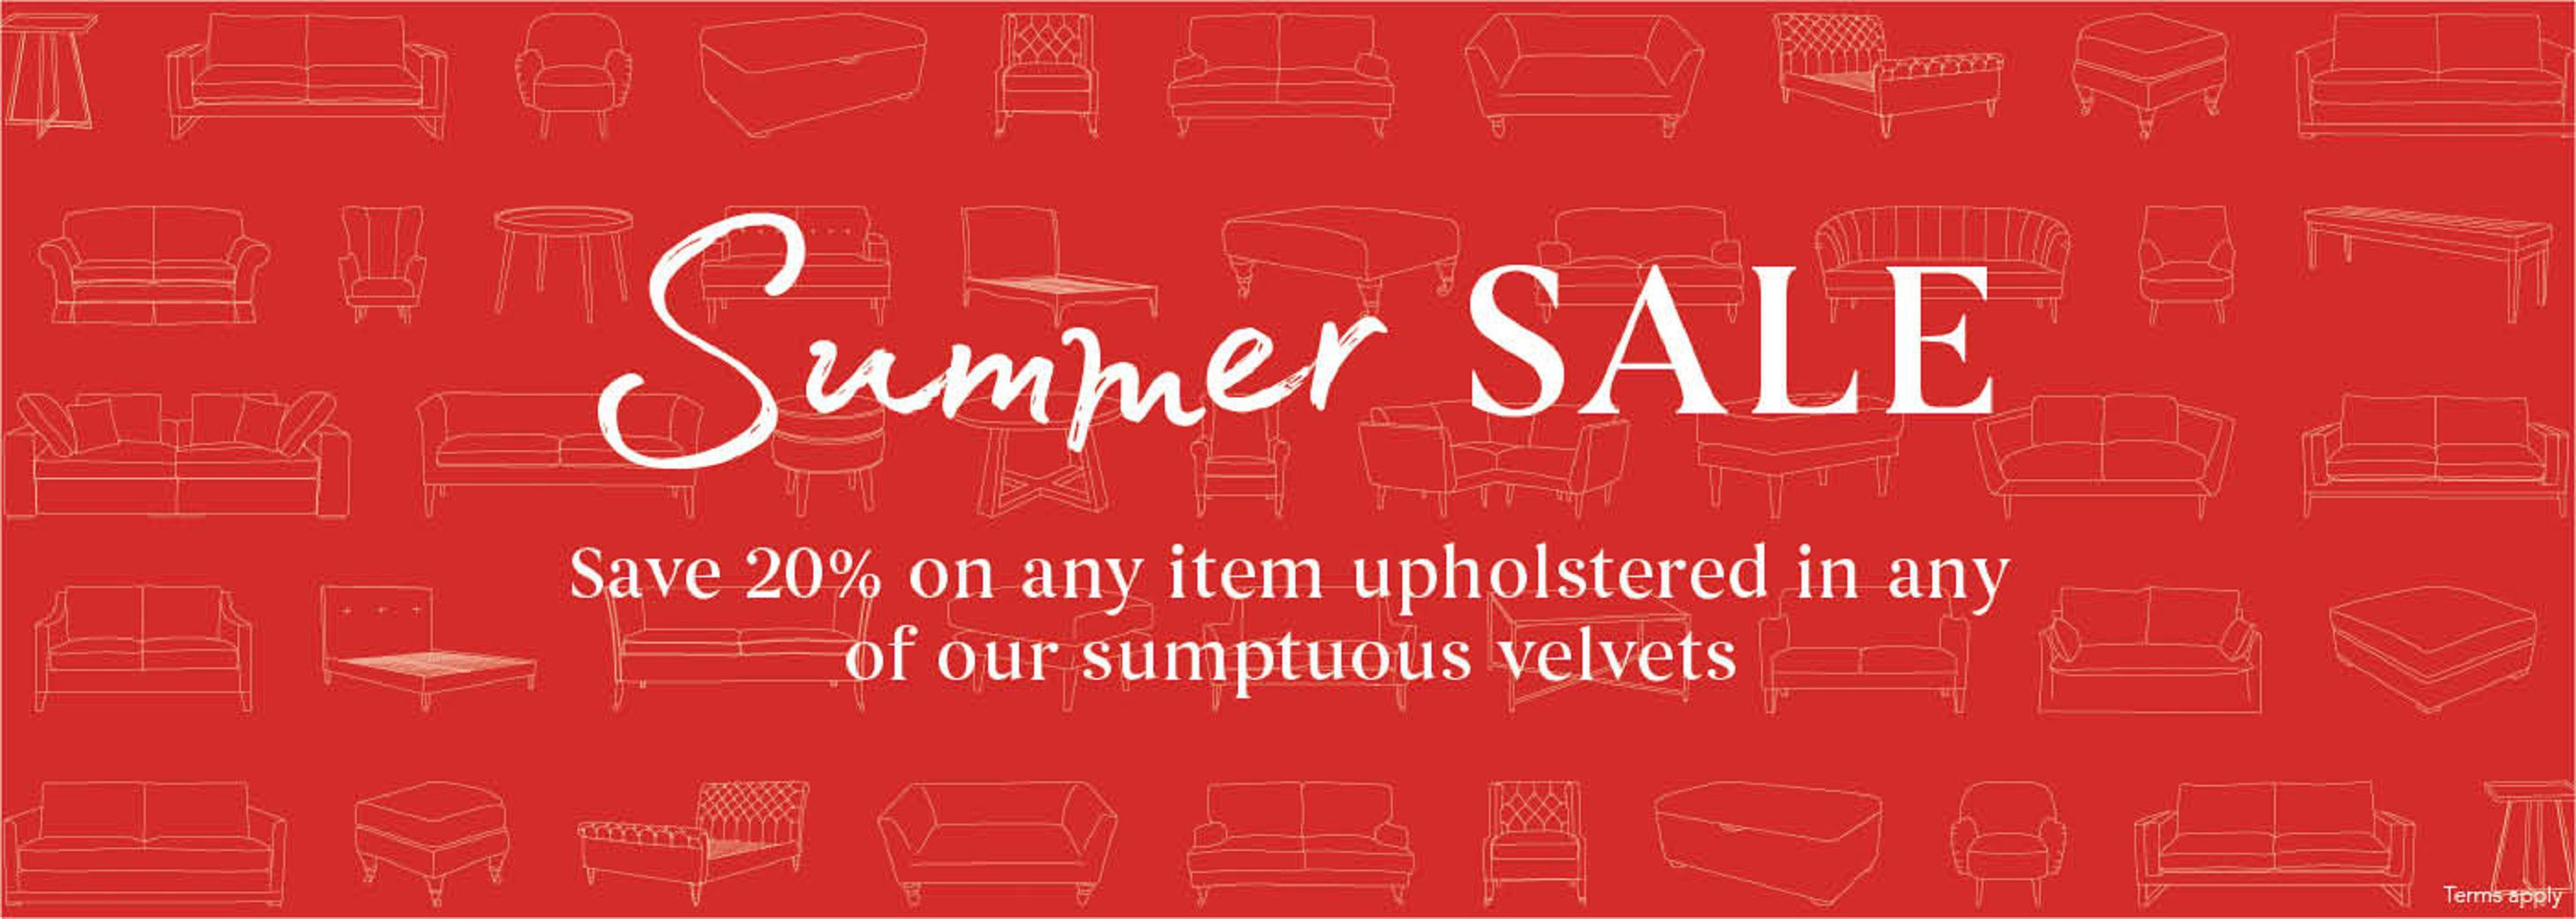 SummerSale_DESKTOPCategory Banner-June20-VELVETONLY.jpg